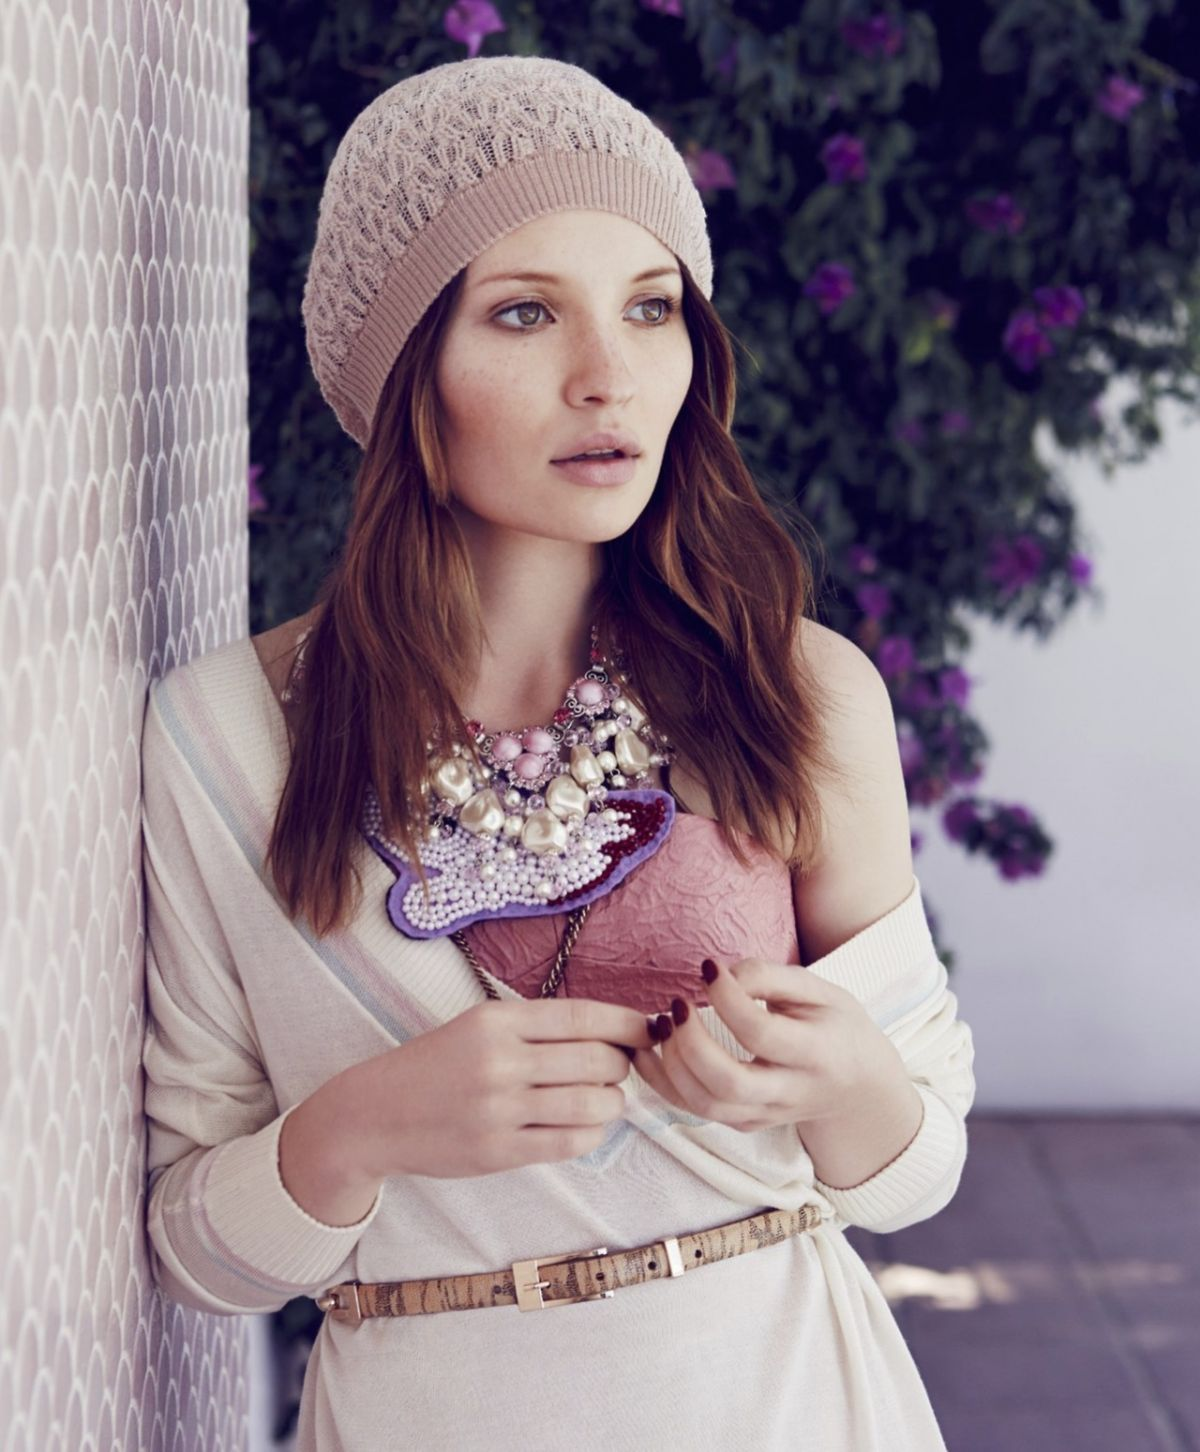 EMILY BROWNING in Instyle Magazine, Australia March 2014 Issue